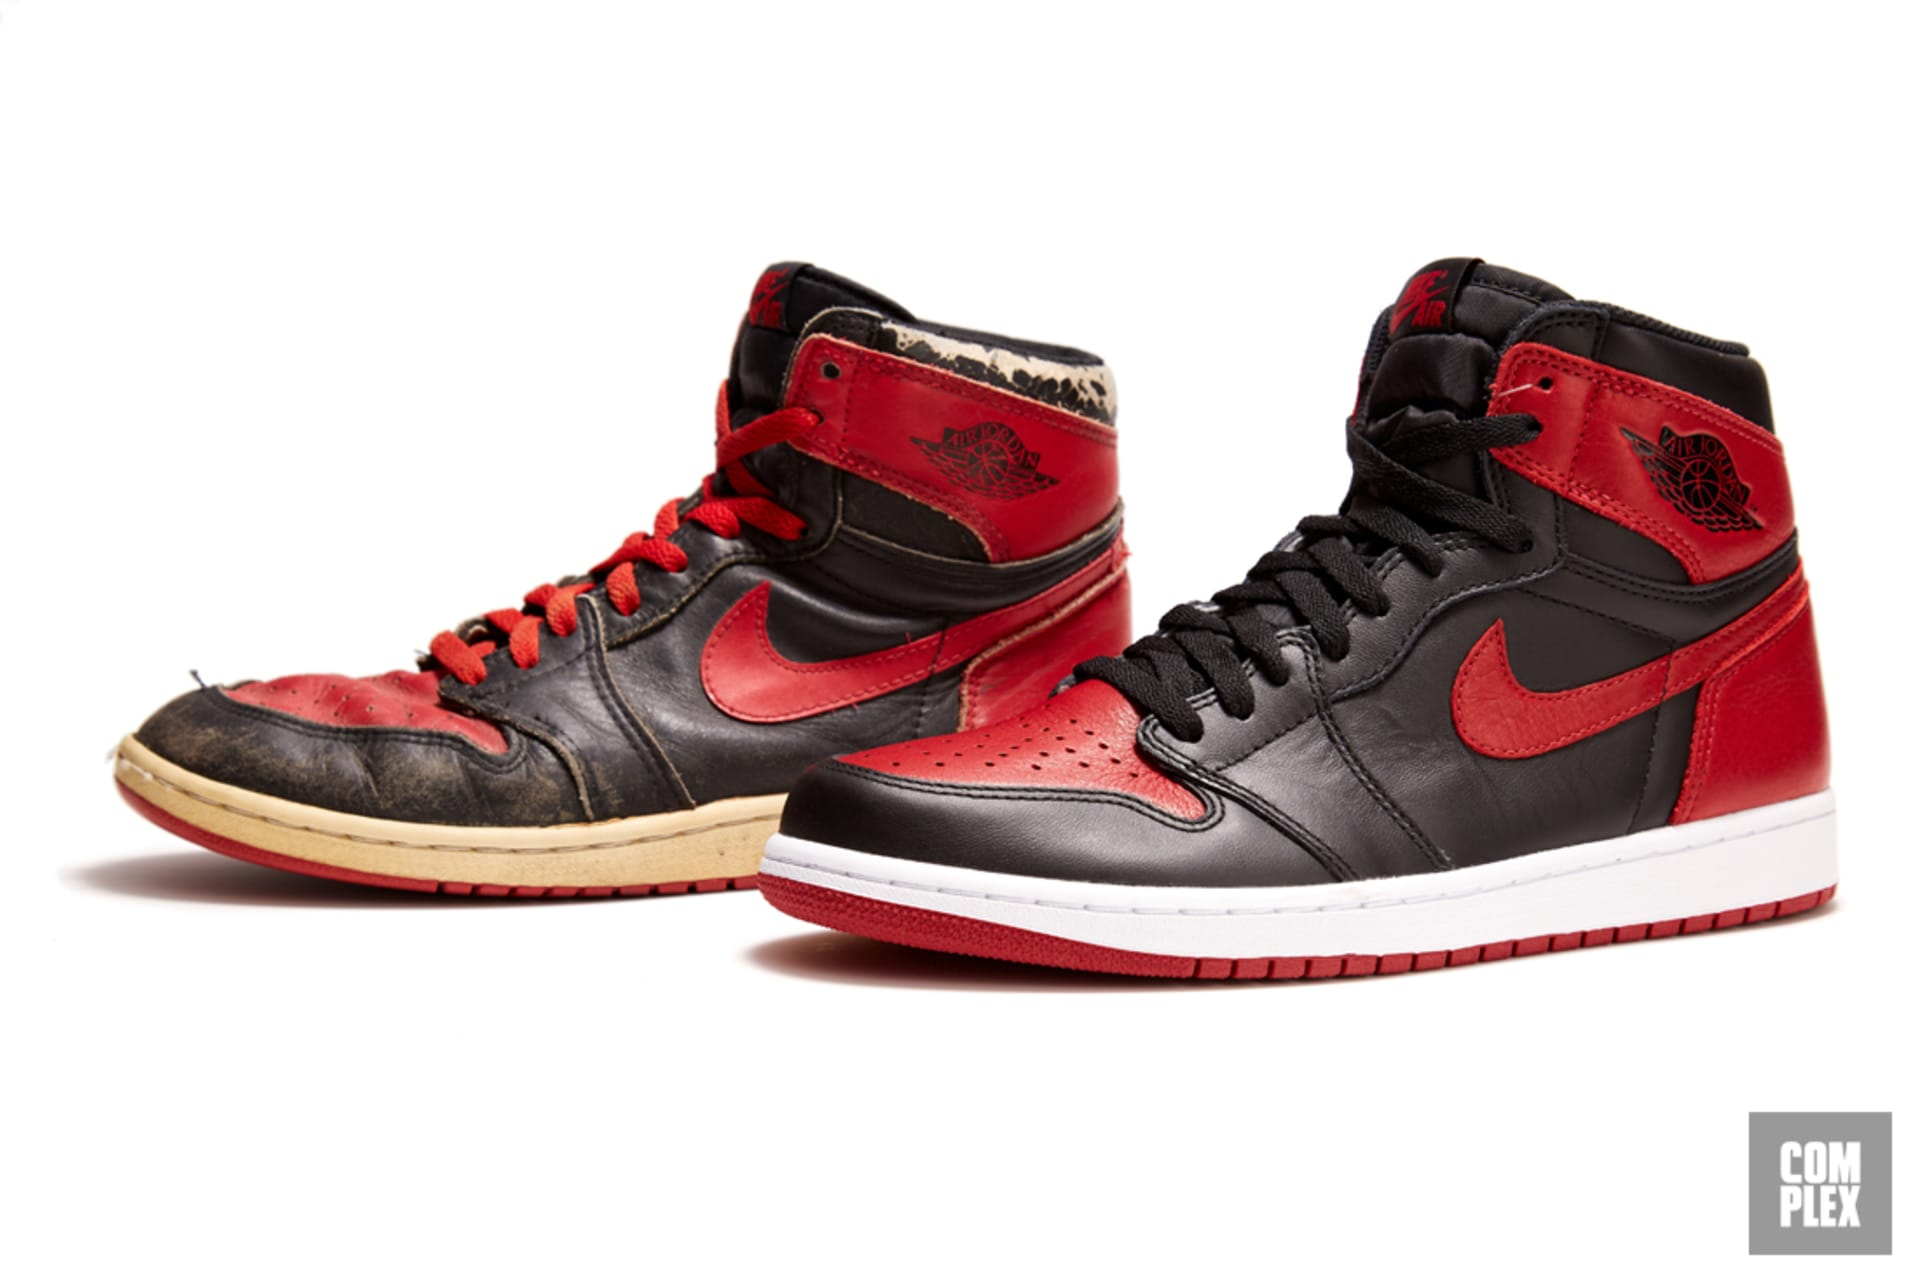 92451f726 The Evolution of the Black and Red Air Jordan 1